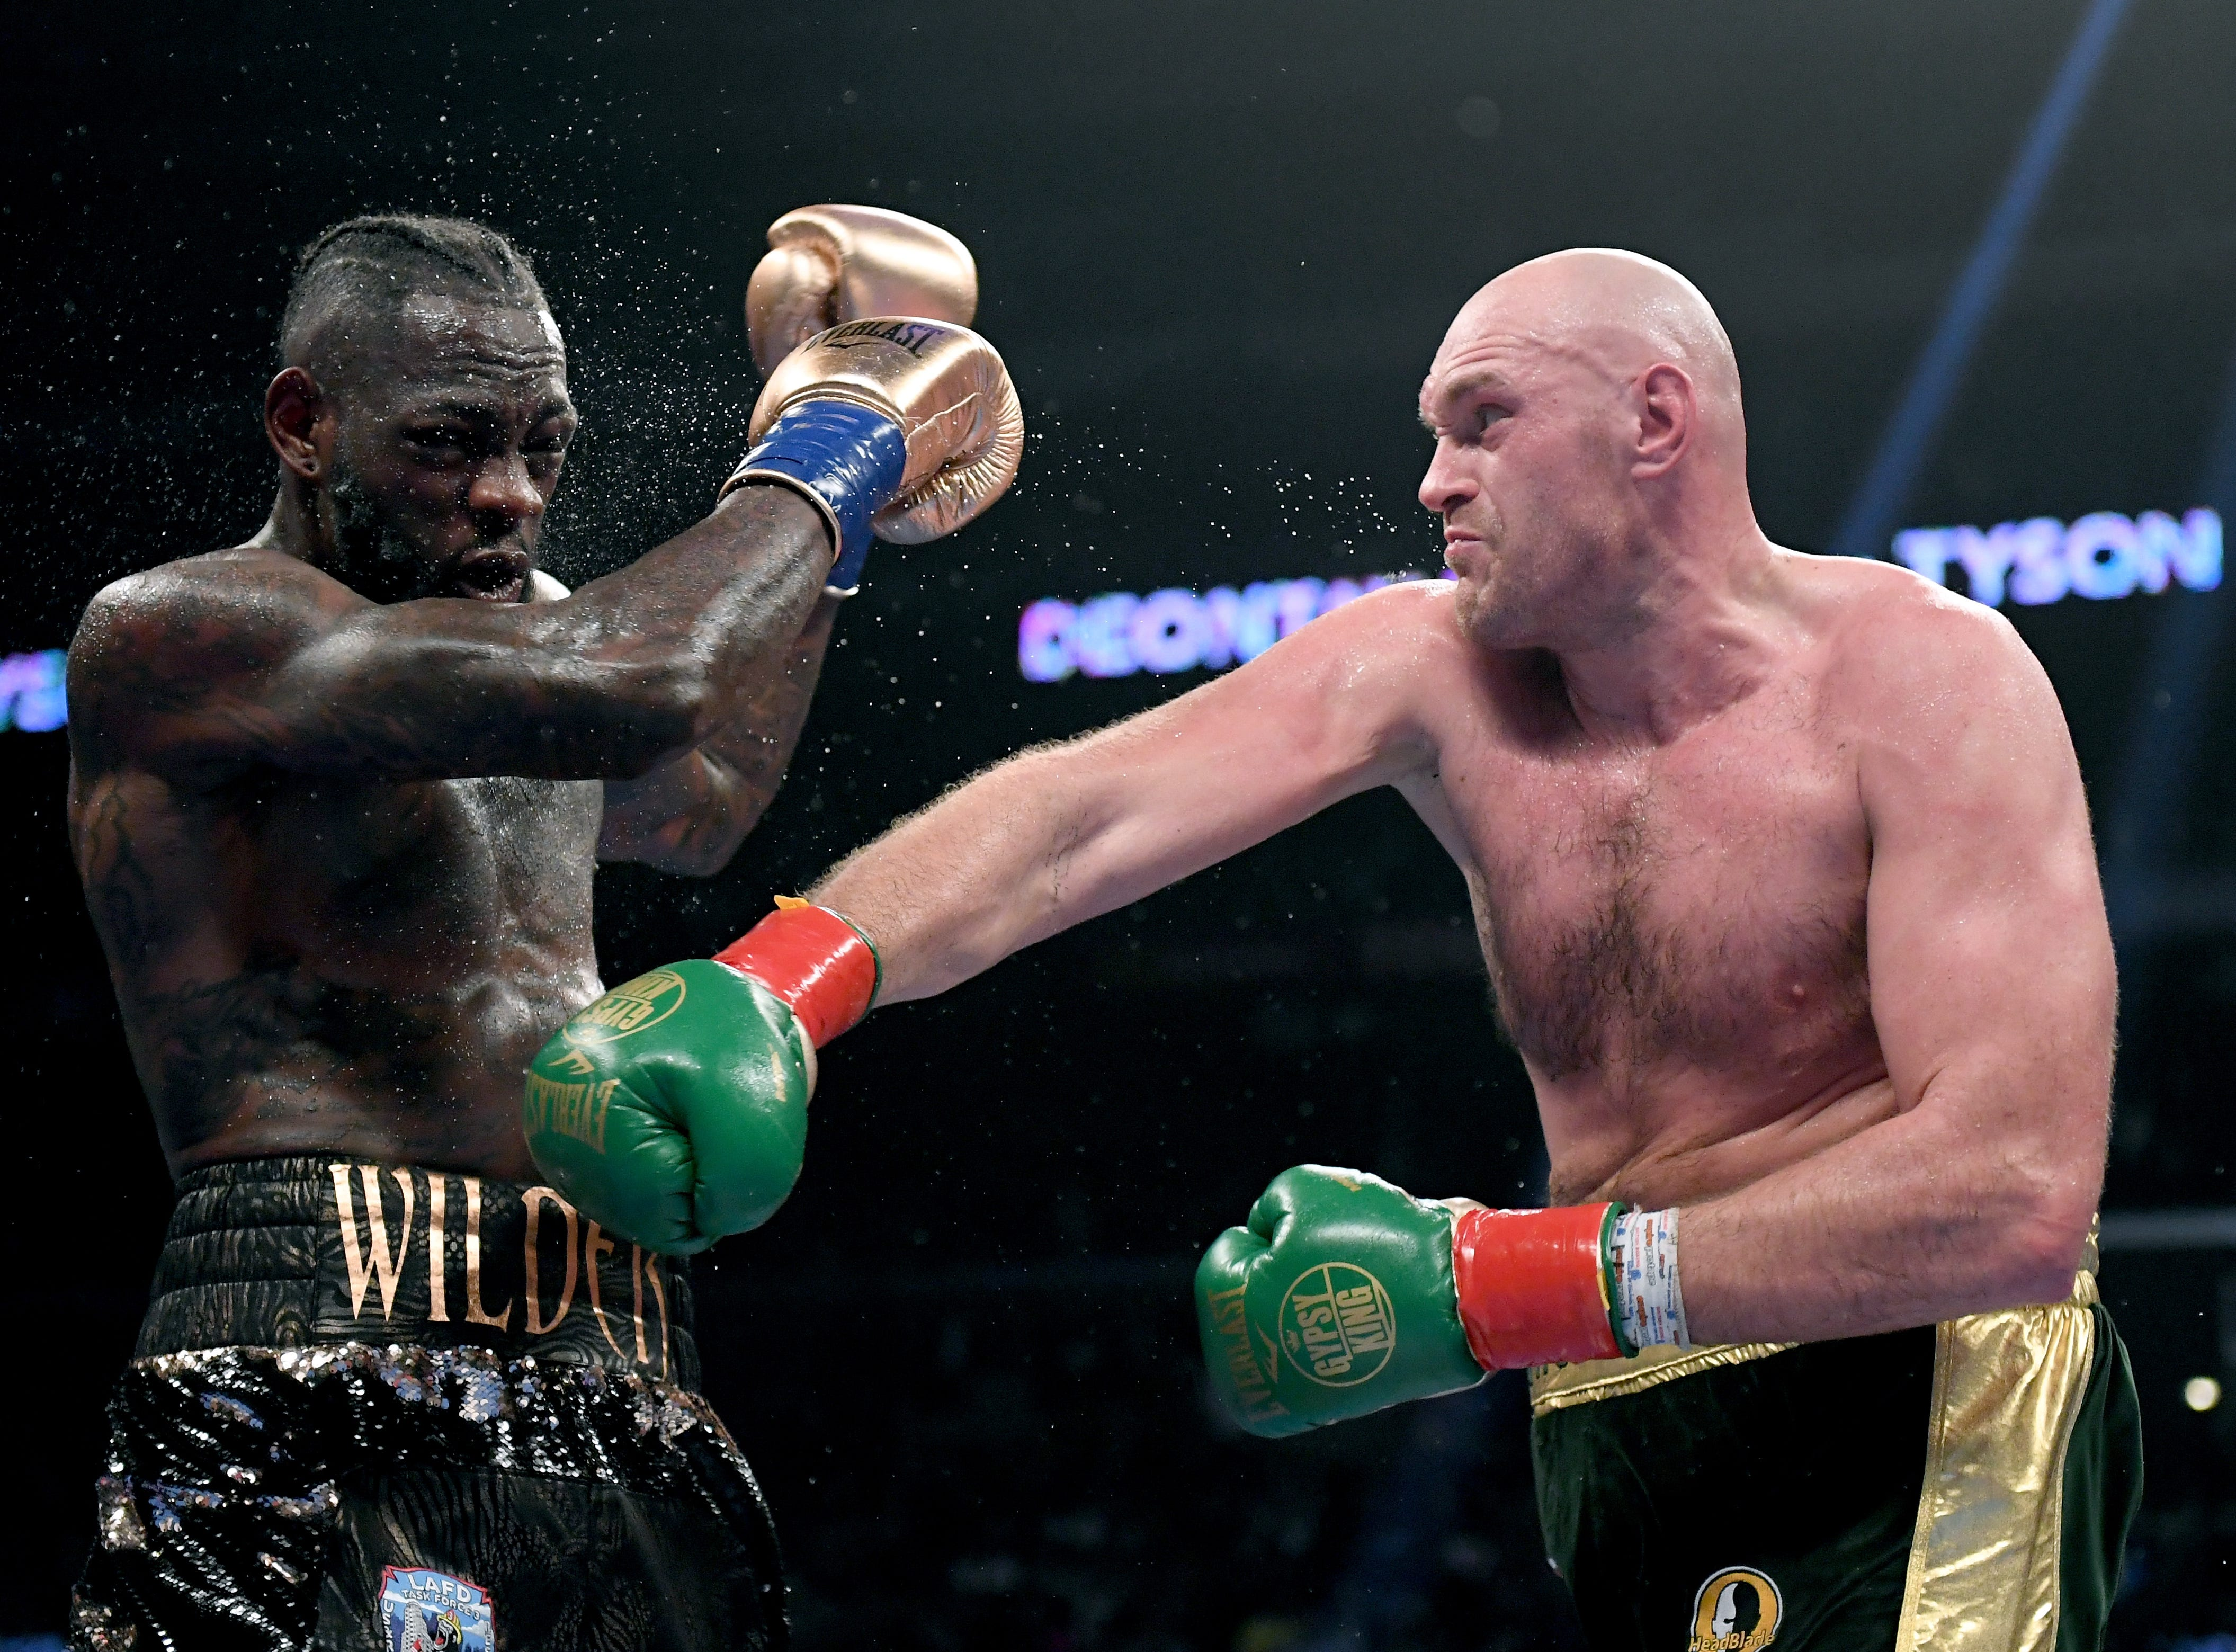 Tyson Fury hits Deontay Wilder with a right hand during the seventh round of their Dec. 1 WBC heavyweight title fight at Staples Center.